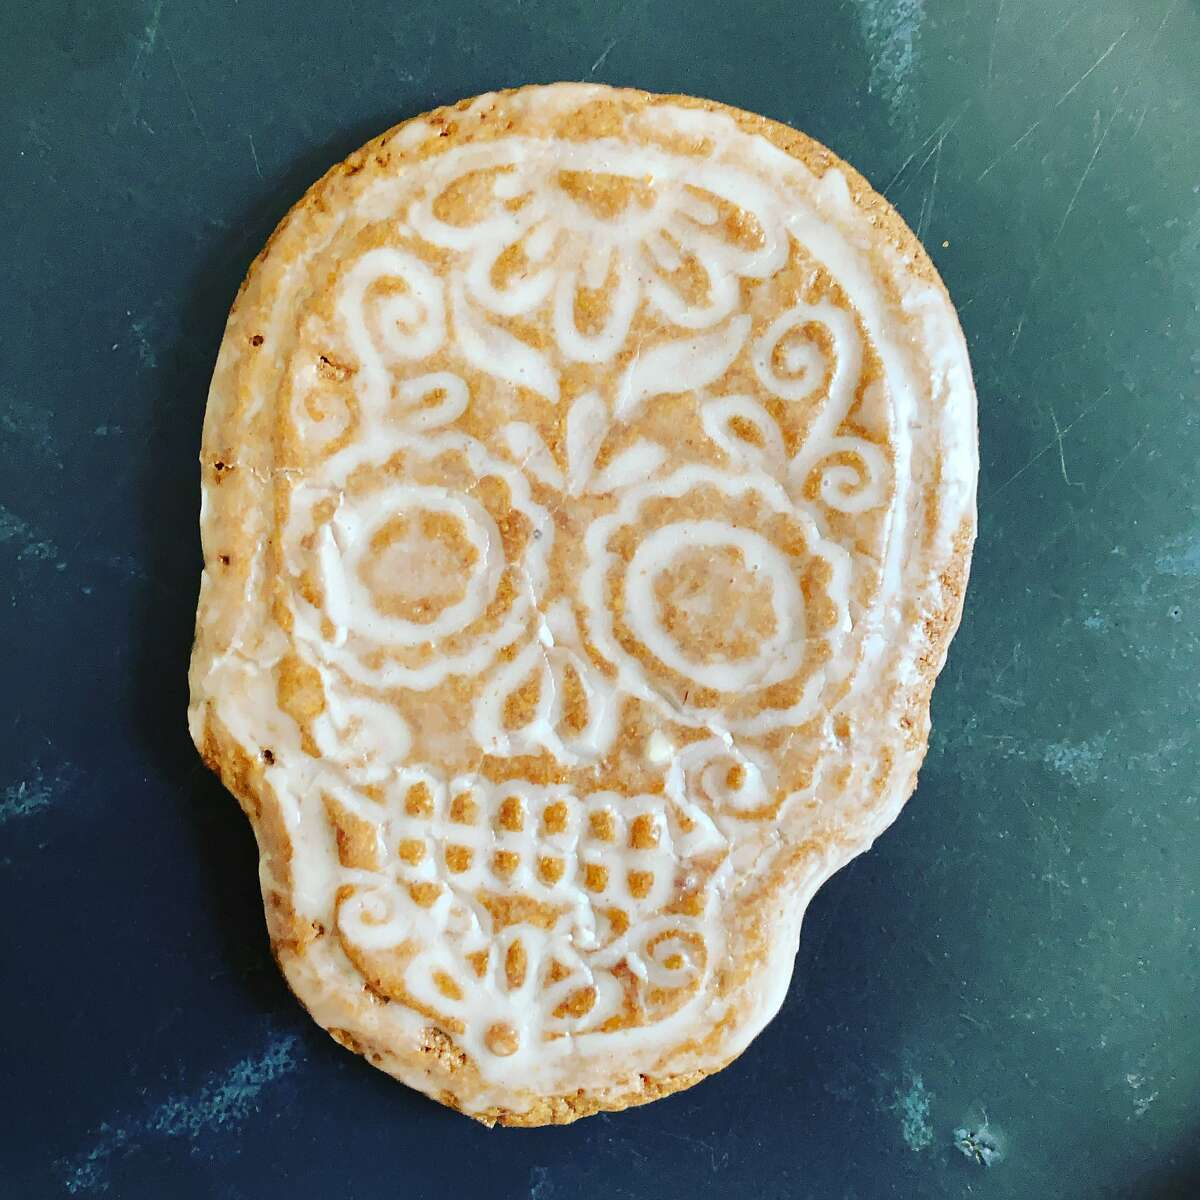 A calaveras cookie from Norte 54, a new popup bakery that delivers modern Mexican pastries and breads in San Francisco and is selling at the Mission Community Market on Thursdays.